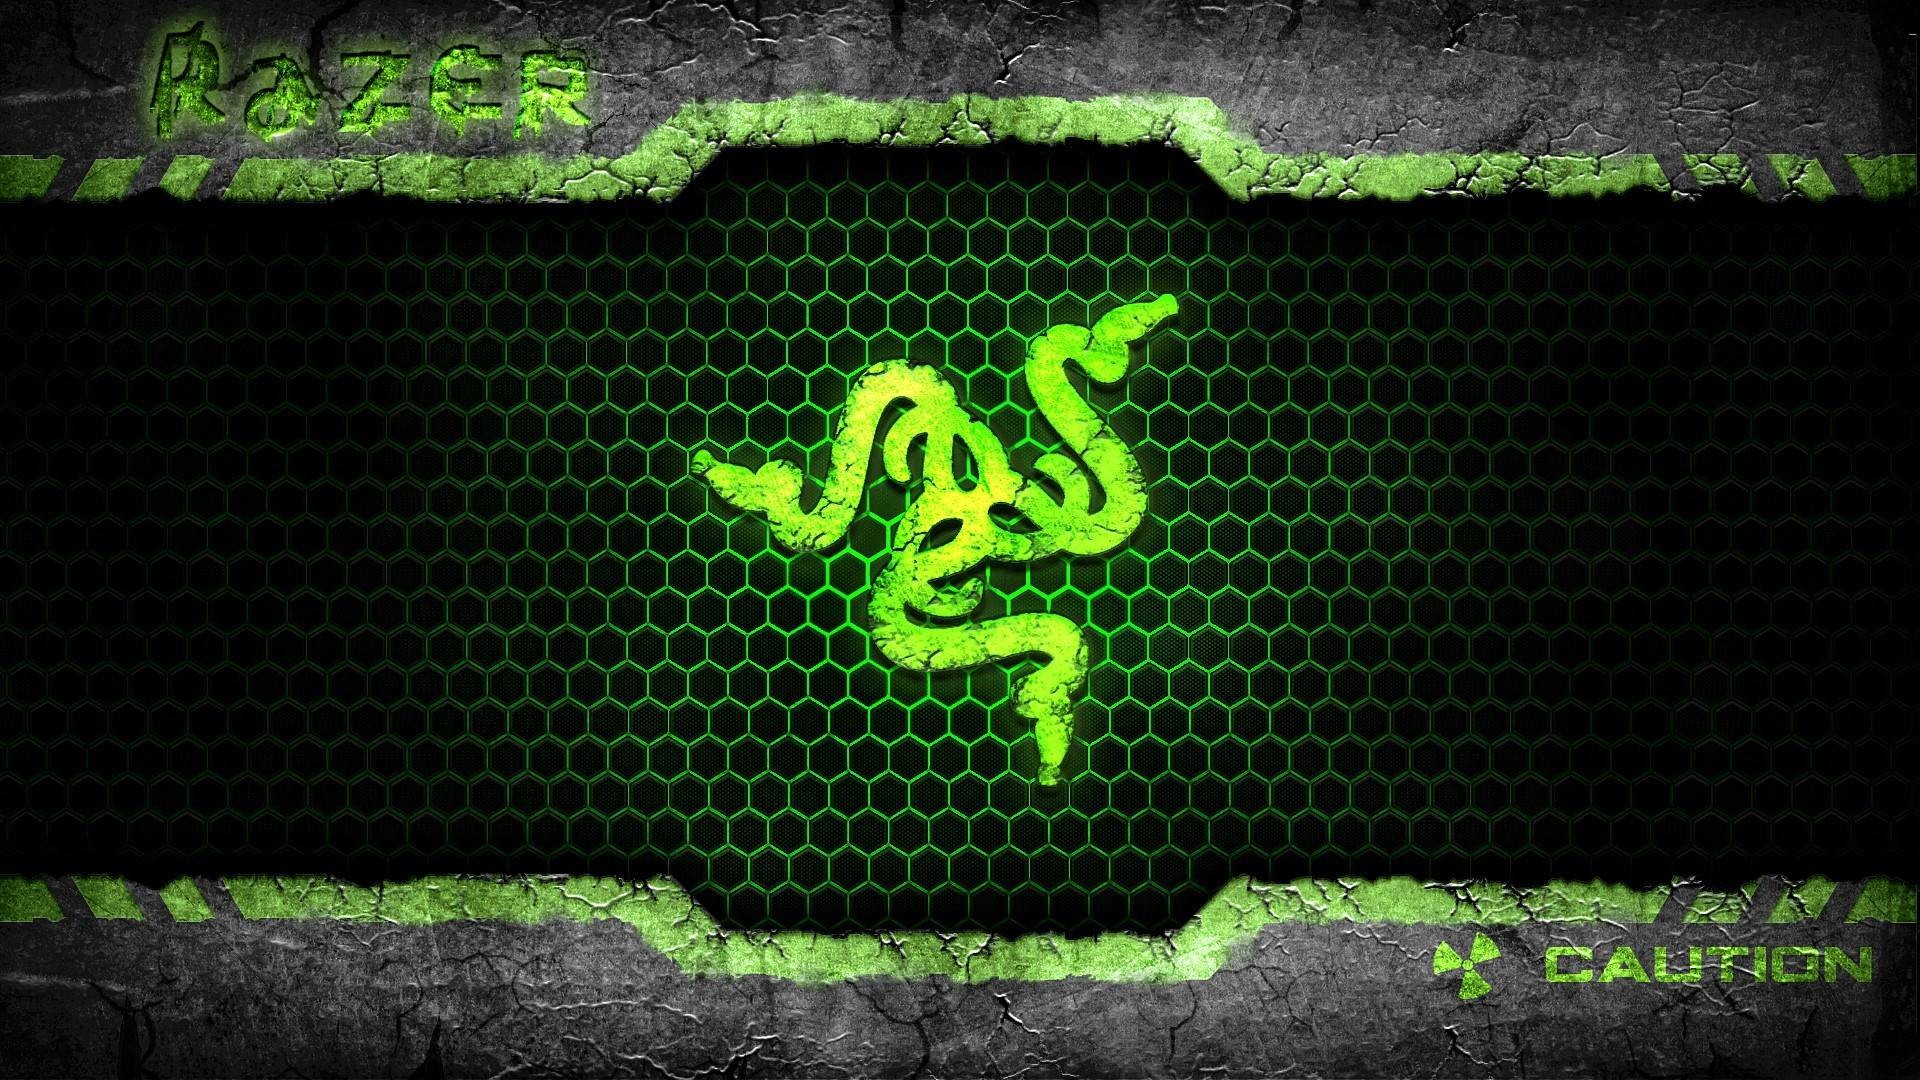 Res: 1920x1080, Wallpapers For > Razer Wallpaper